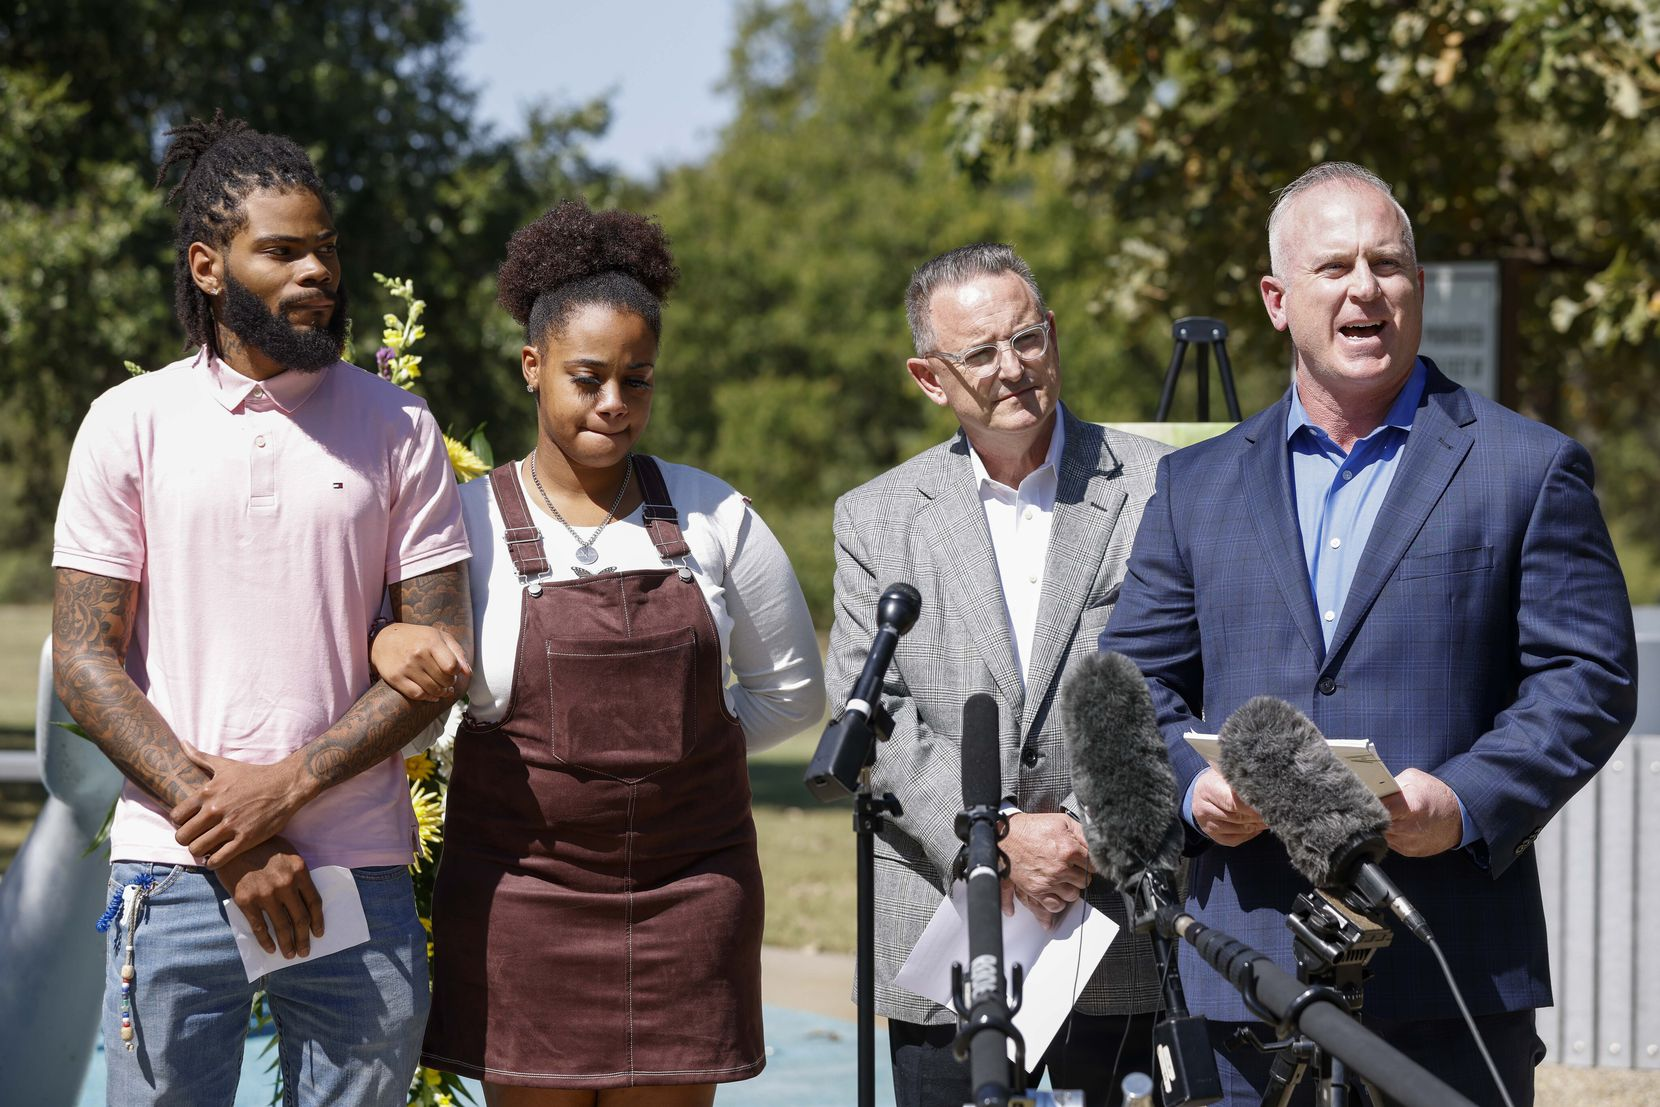 Attorney Brian Hargrove (right) speaks alongside Tariq Williams (left) and Kayla Mitchell during a press conference at Don Misenhimer Park on Monday in Arlington. Williams and Mitchell are the parents of 3-year-old Bakari Williams who died Sept. 11 after contracting a brain-eating amoeba the splash pad at the park.